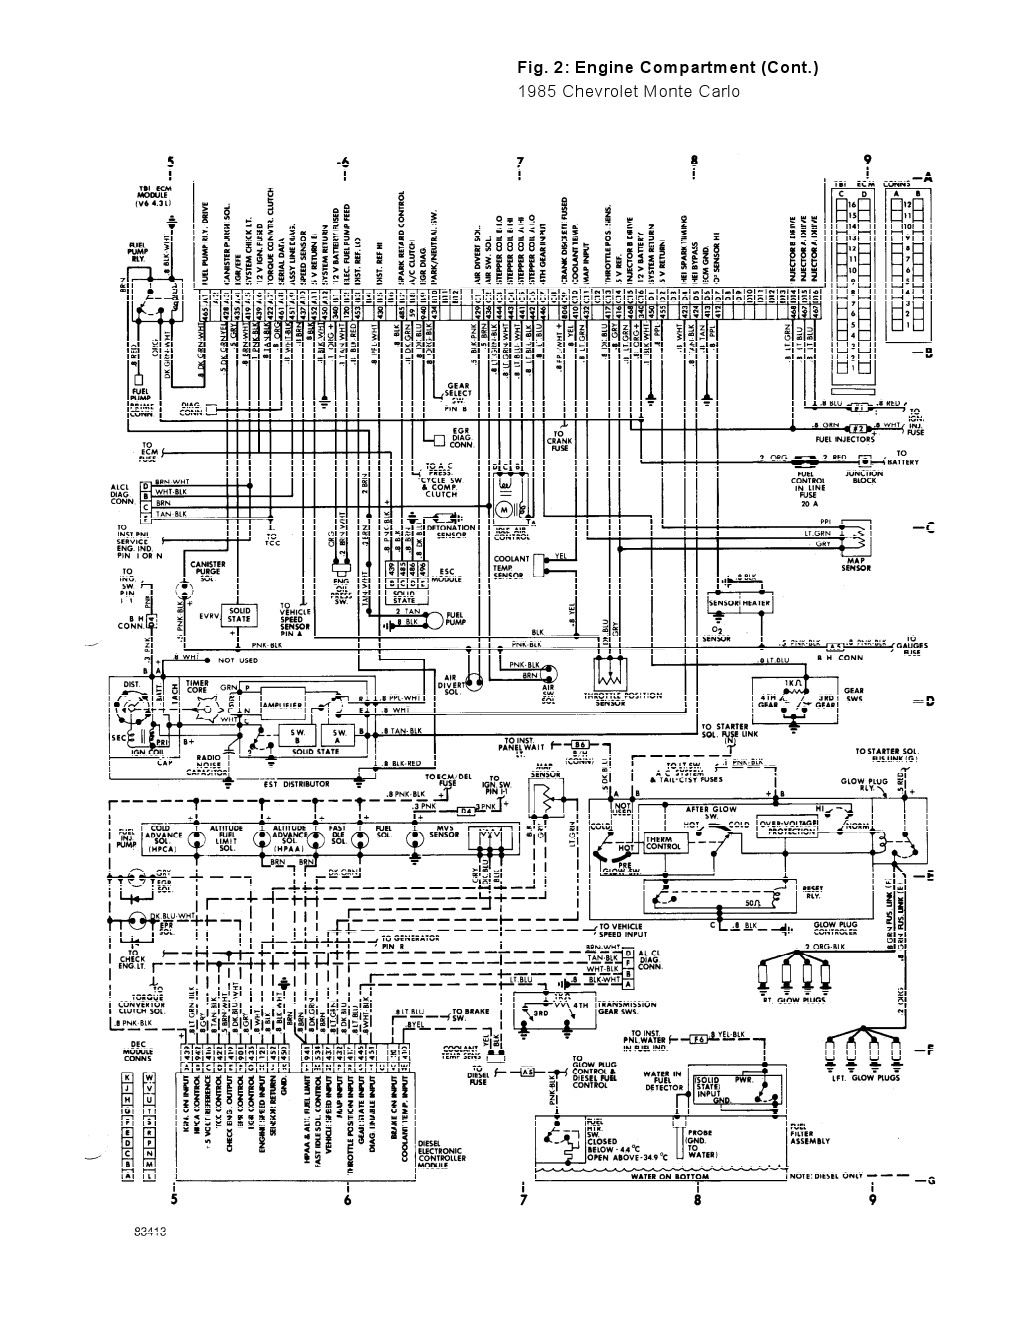 engine wiring diagram 2000 monte carlo ss 3 8 get free image about wiring diagram 2003 Monte Carlo Serpentine Belt Diagram 2003 monte carlo engine diagram